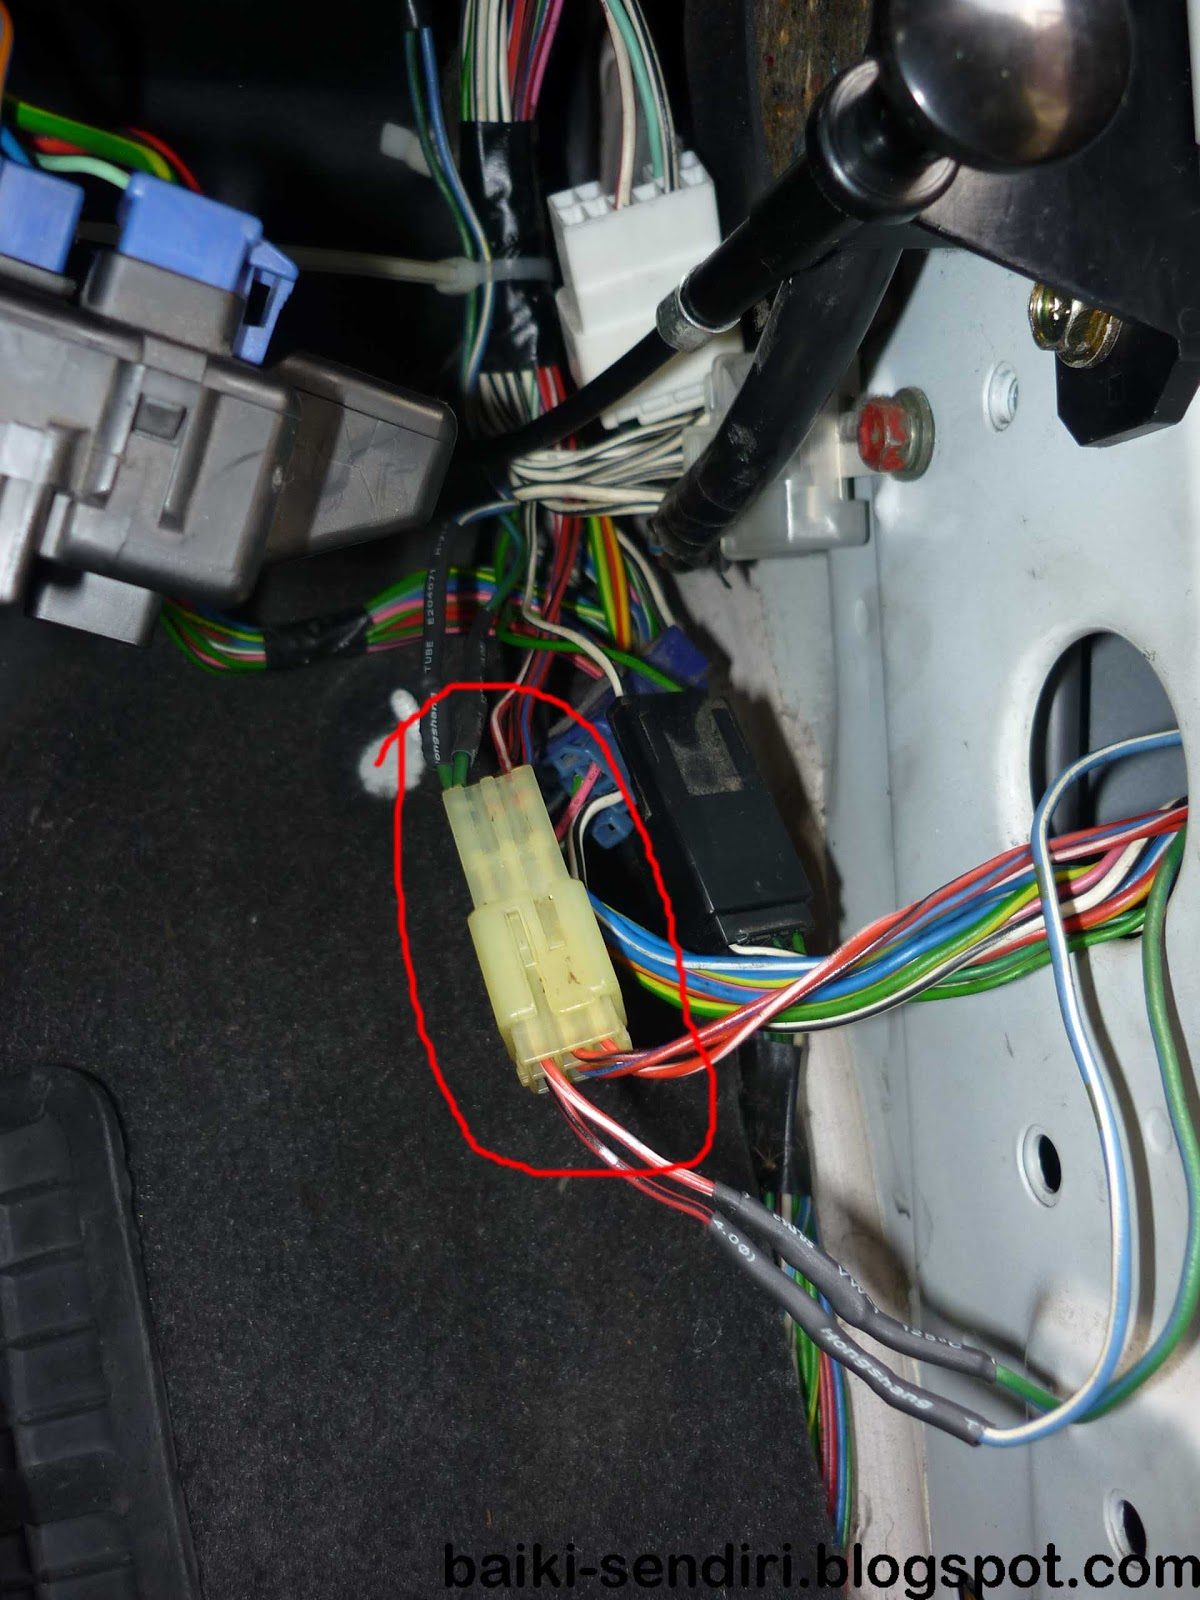 Daihatsu Coure Perodua Kelisa Auto Flip Side Mirror Back Rear Circuit Diagram Wiring Connection Switch